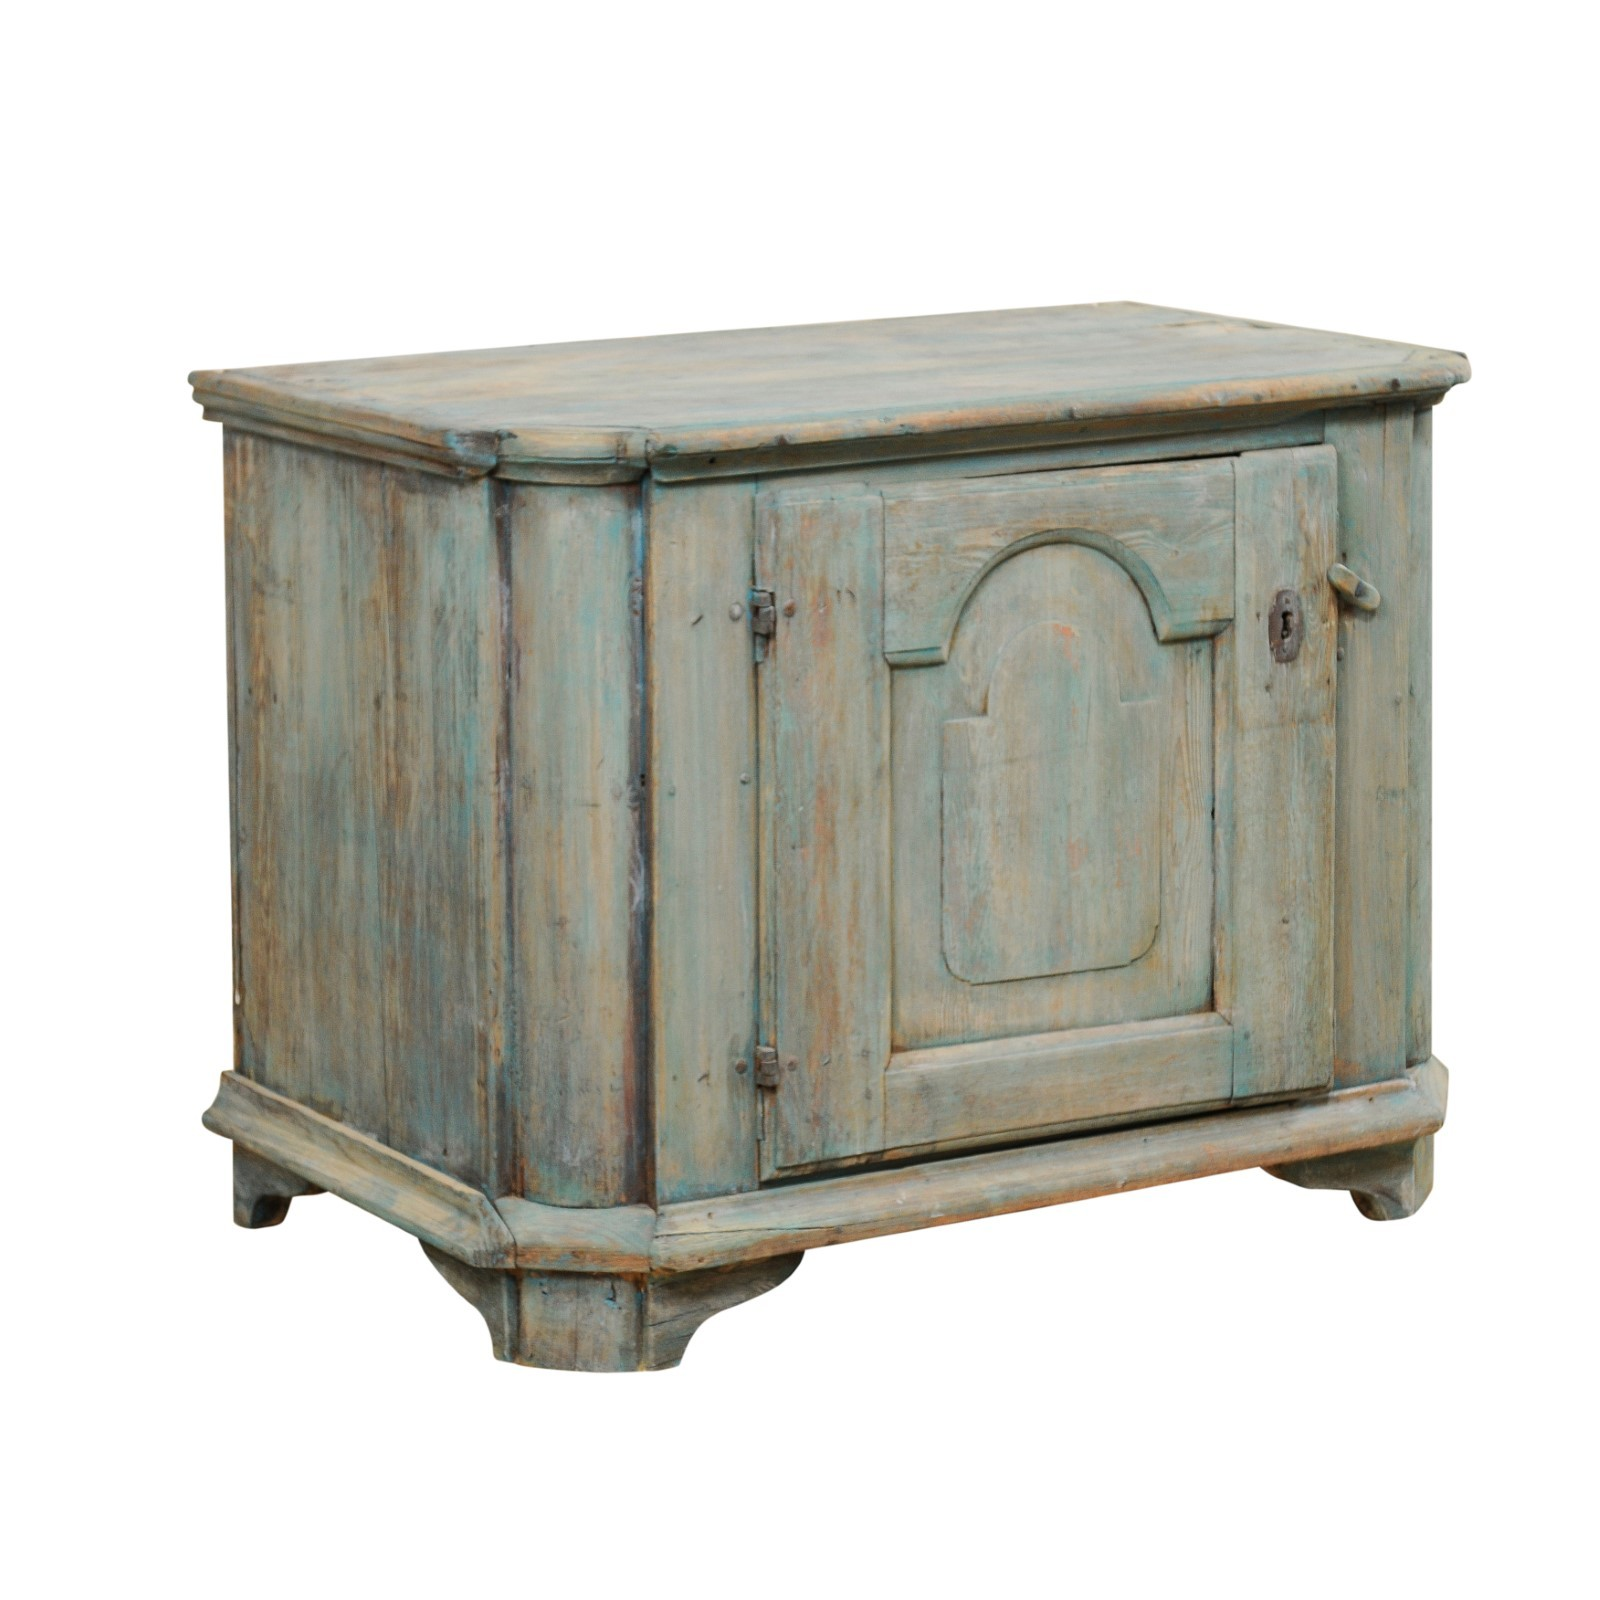 18th C. Swedish Cabinet in Teal Blue